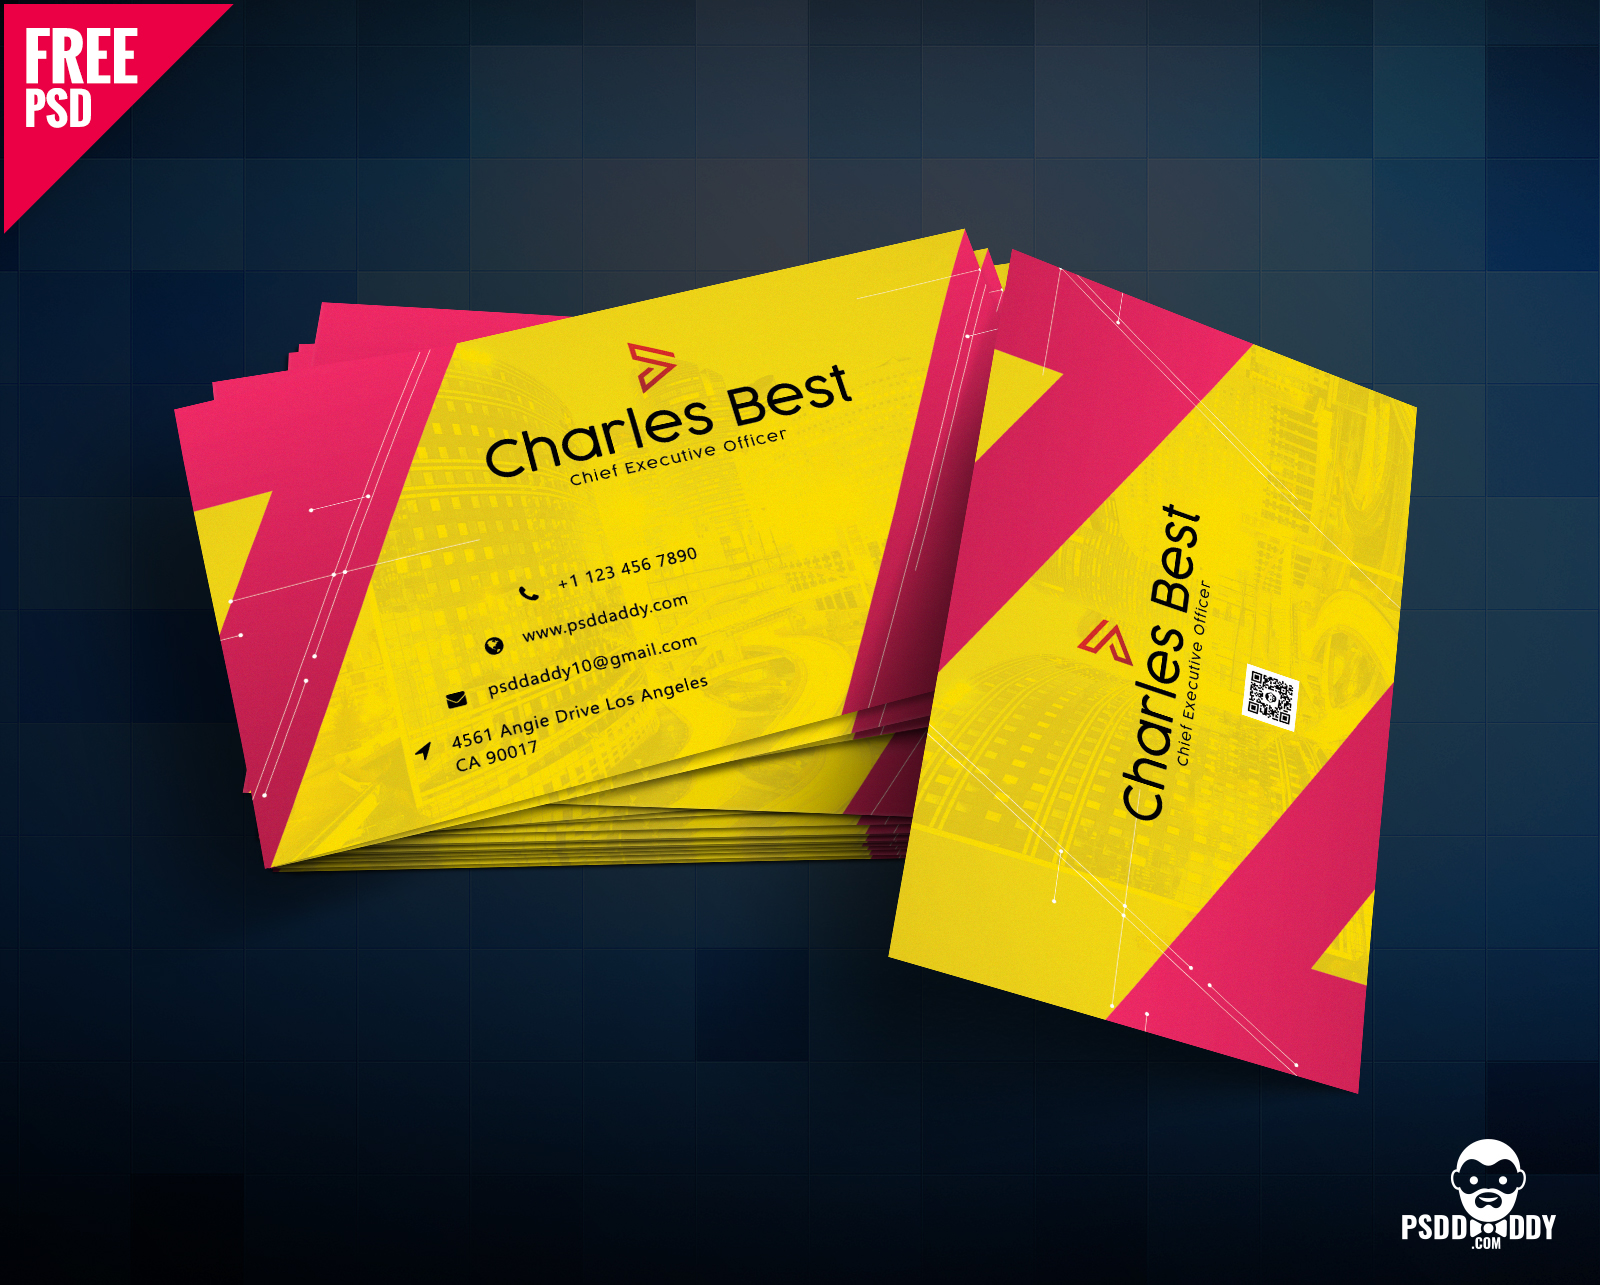 Download creative business card free psd psddaddy business card design business card design templates business card dimensions business card holder cheaphphosting Image collections